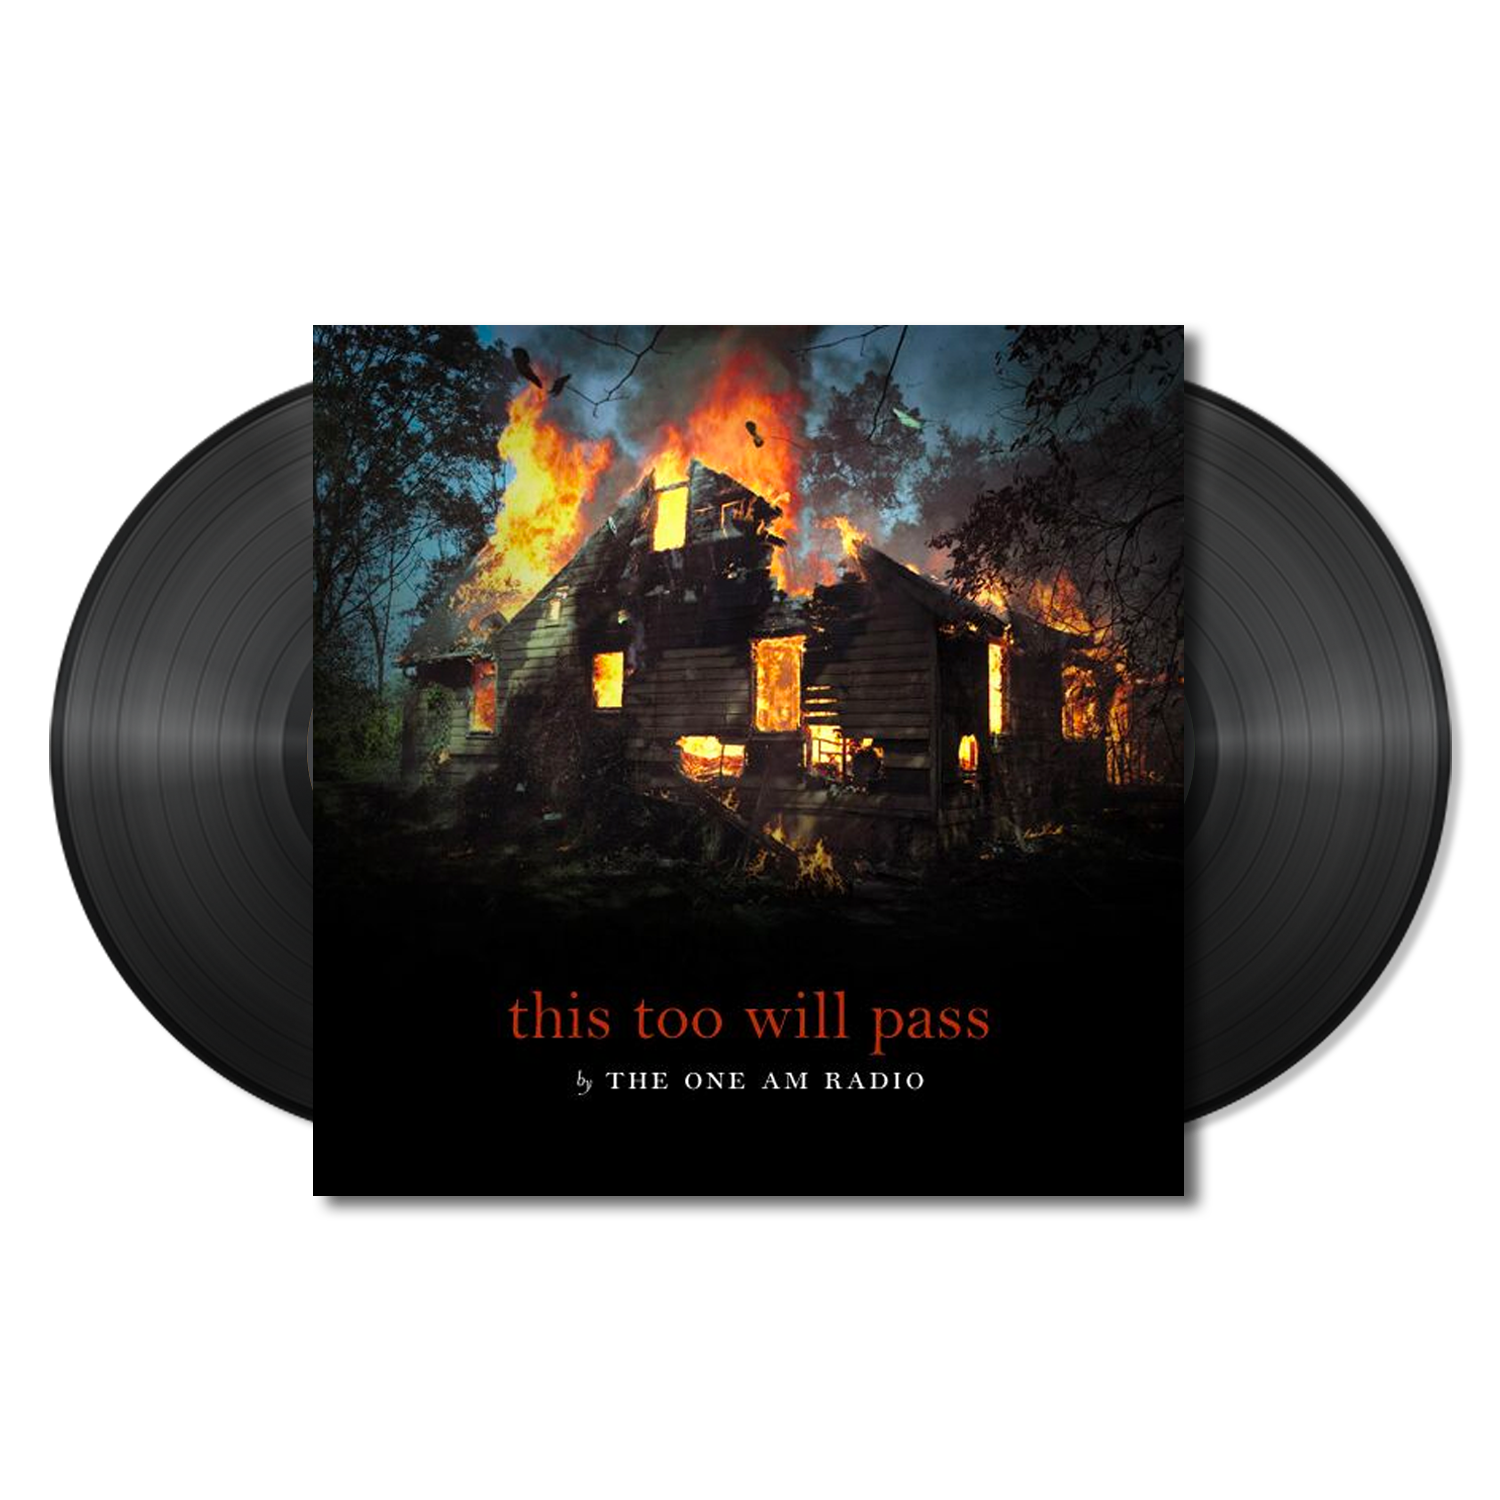 The One AM Radio - This Too Will Pass - 2 x Black LP